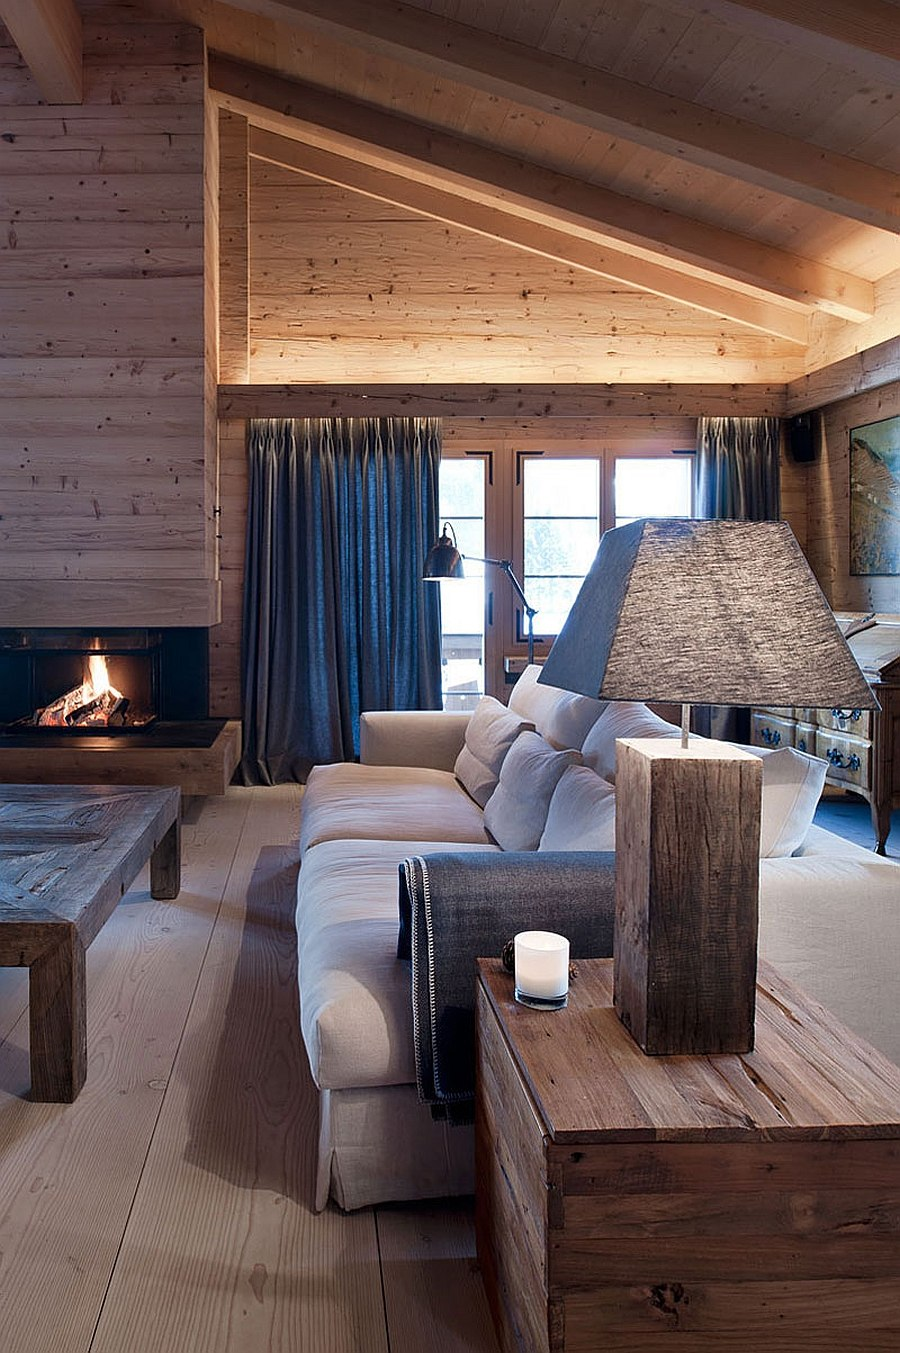 Wonderful blend of textures and roaring fireplace steal the show